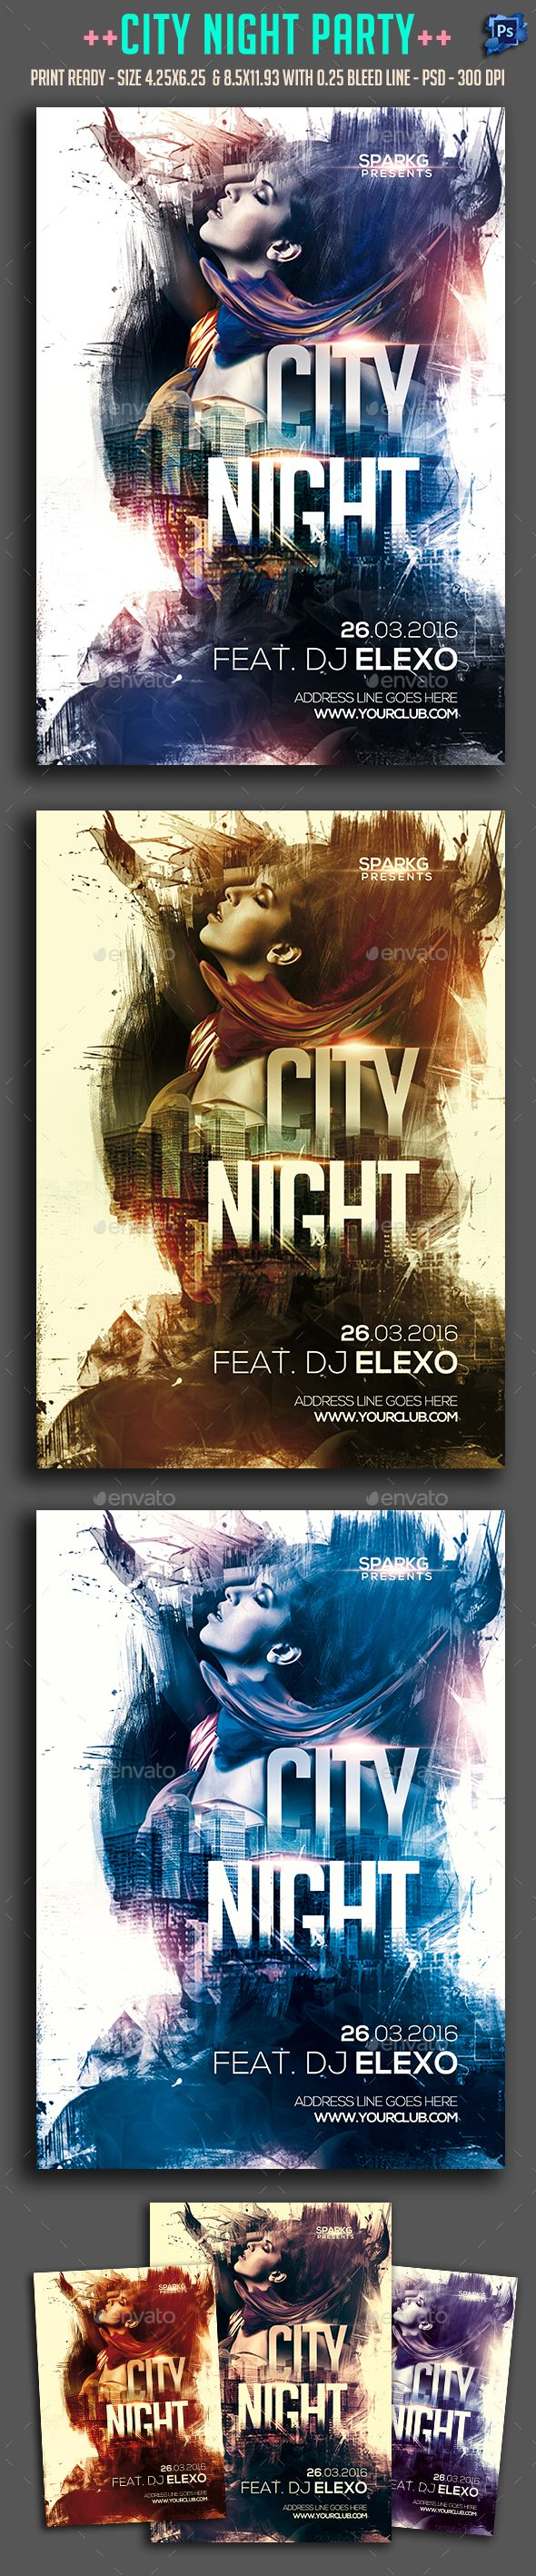 Poster design with a lot of text - City Night Party Flyer Template Psd Design Download Http Graphicriver